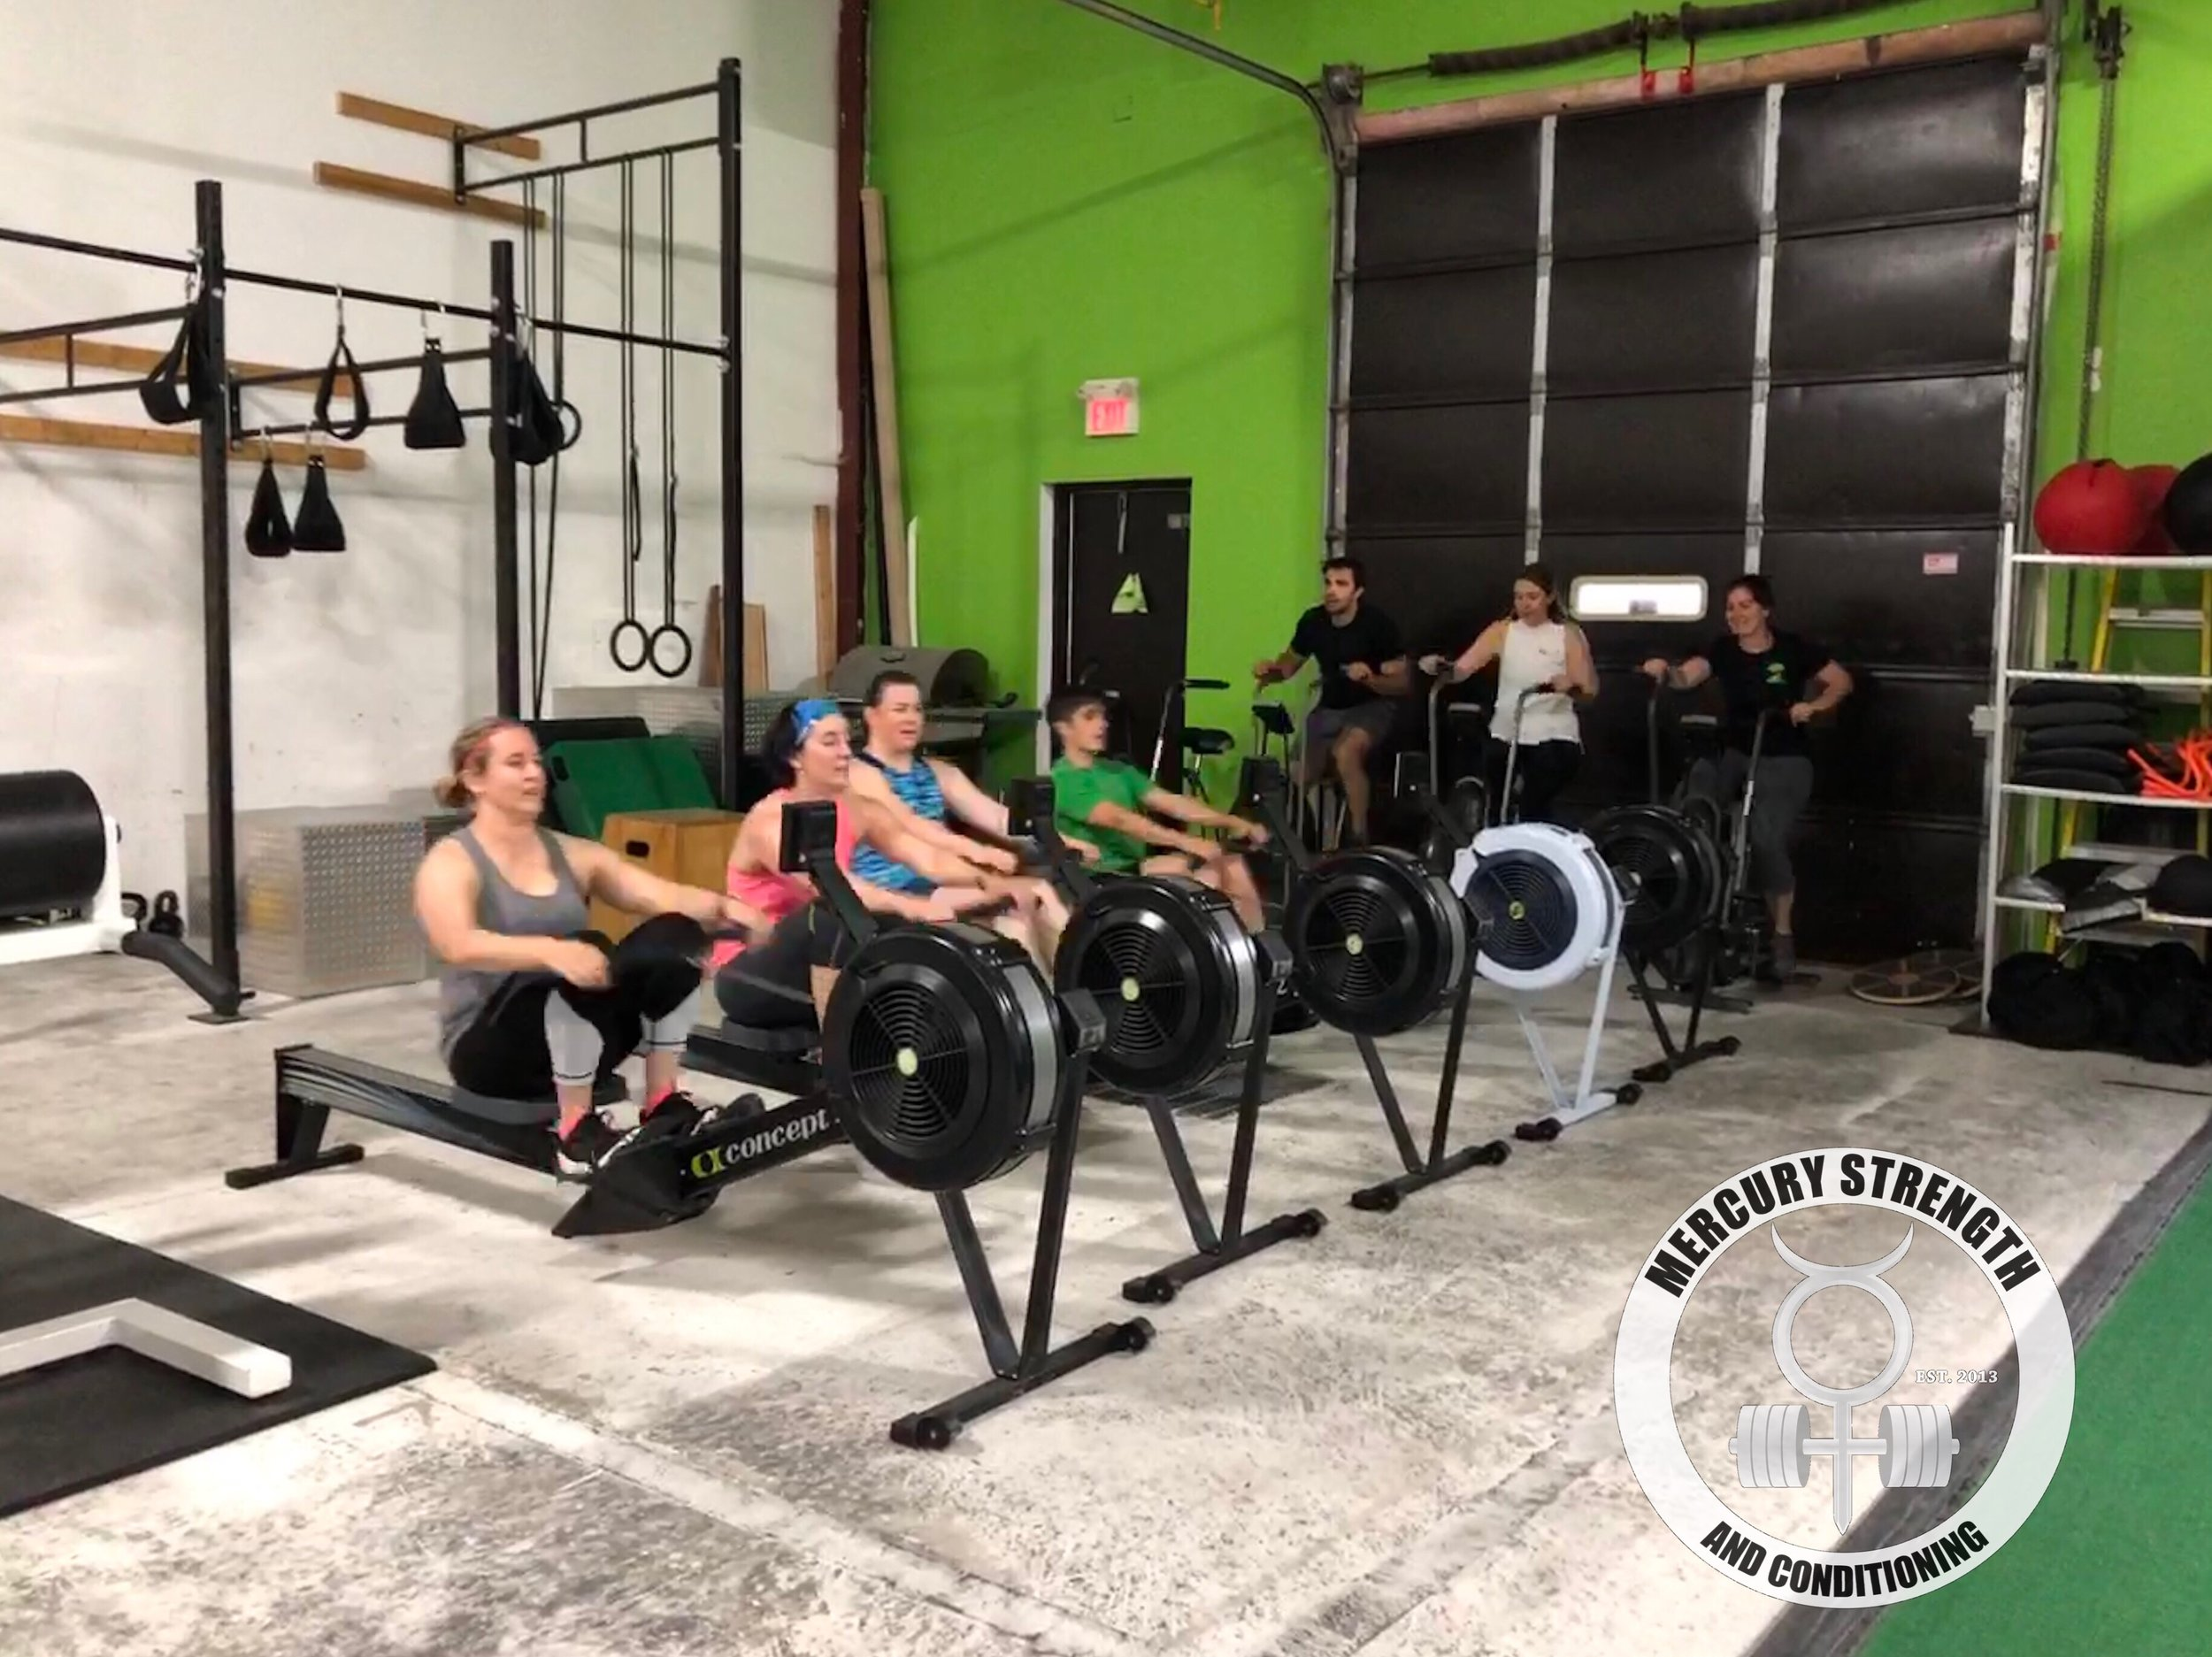 Gym-powerlifting-Olympic lifting-fitness-personal training-training-bootcamp-crossfit-kingston-kingston gym-kids-mercury-strength-conditioning-athlete-row-air dyne